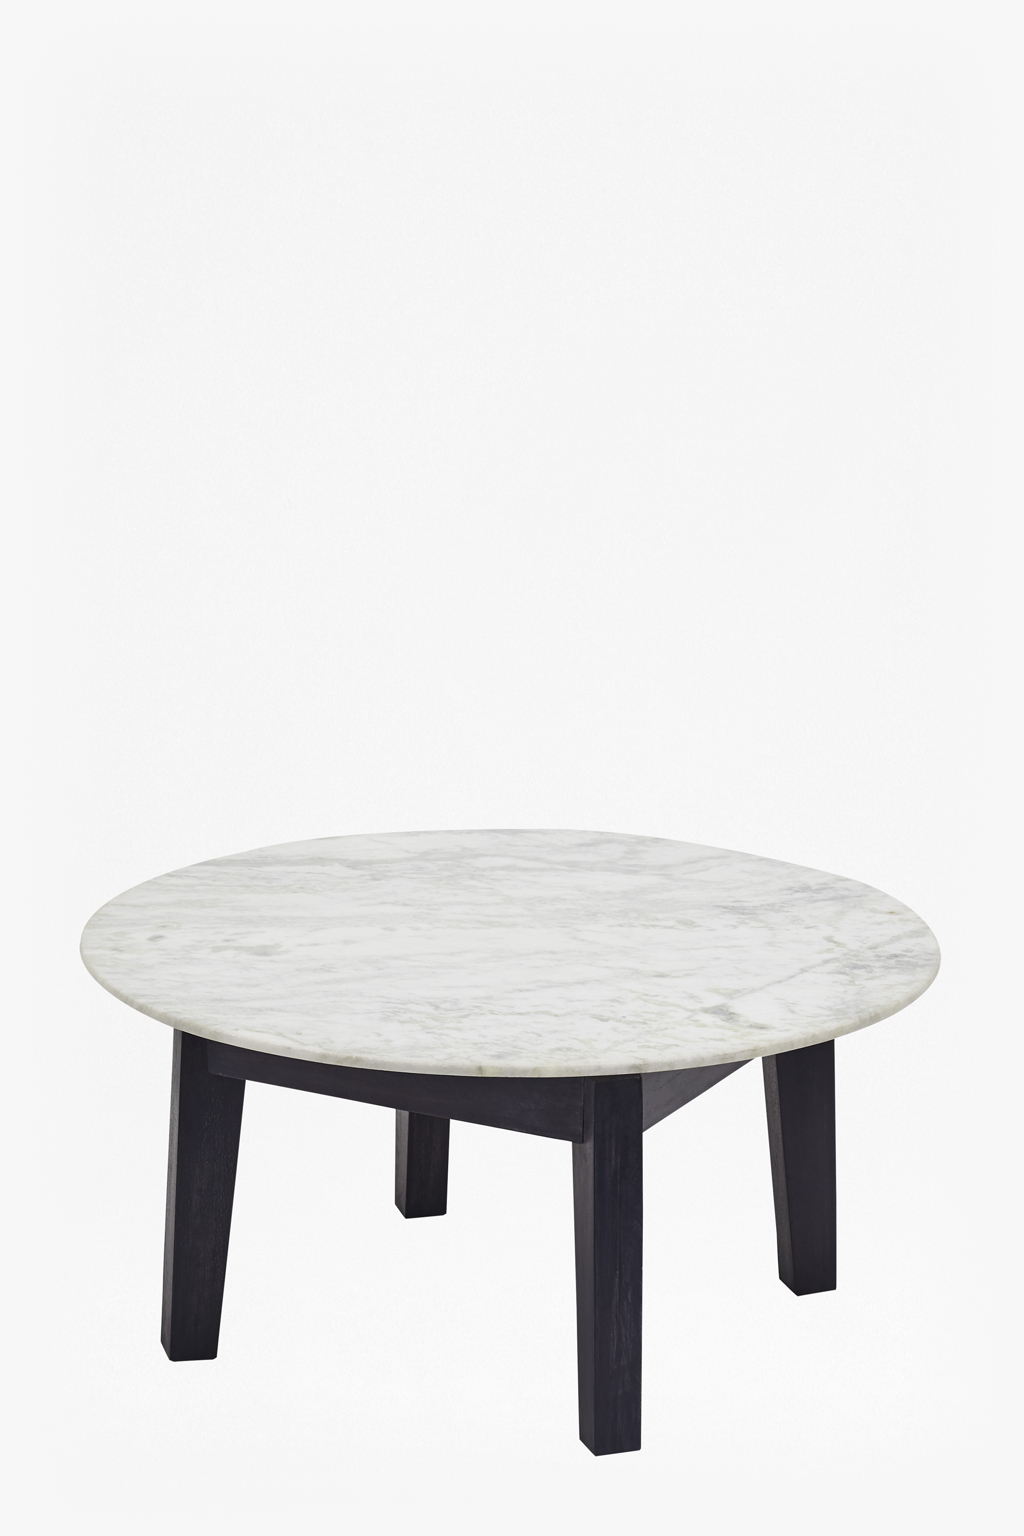 Contemporary Cappuccino Connect It Computer: Agra Round Marble Coffee Table